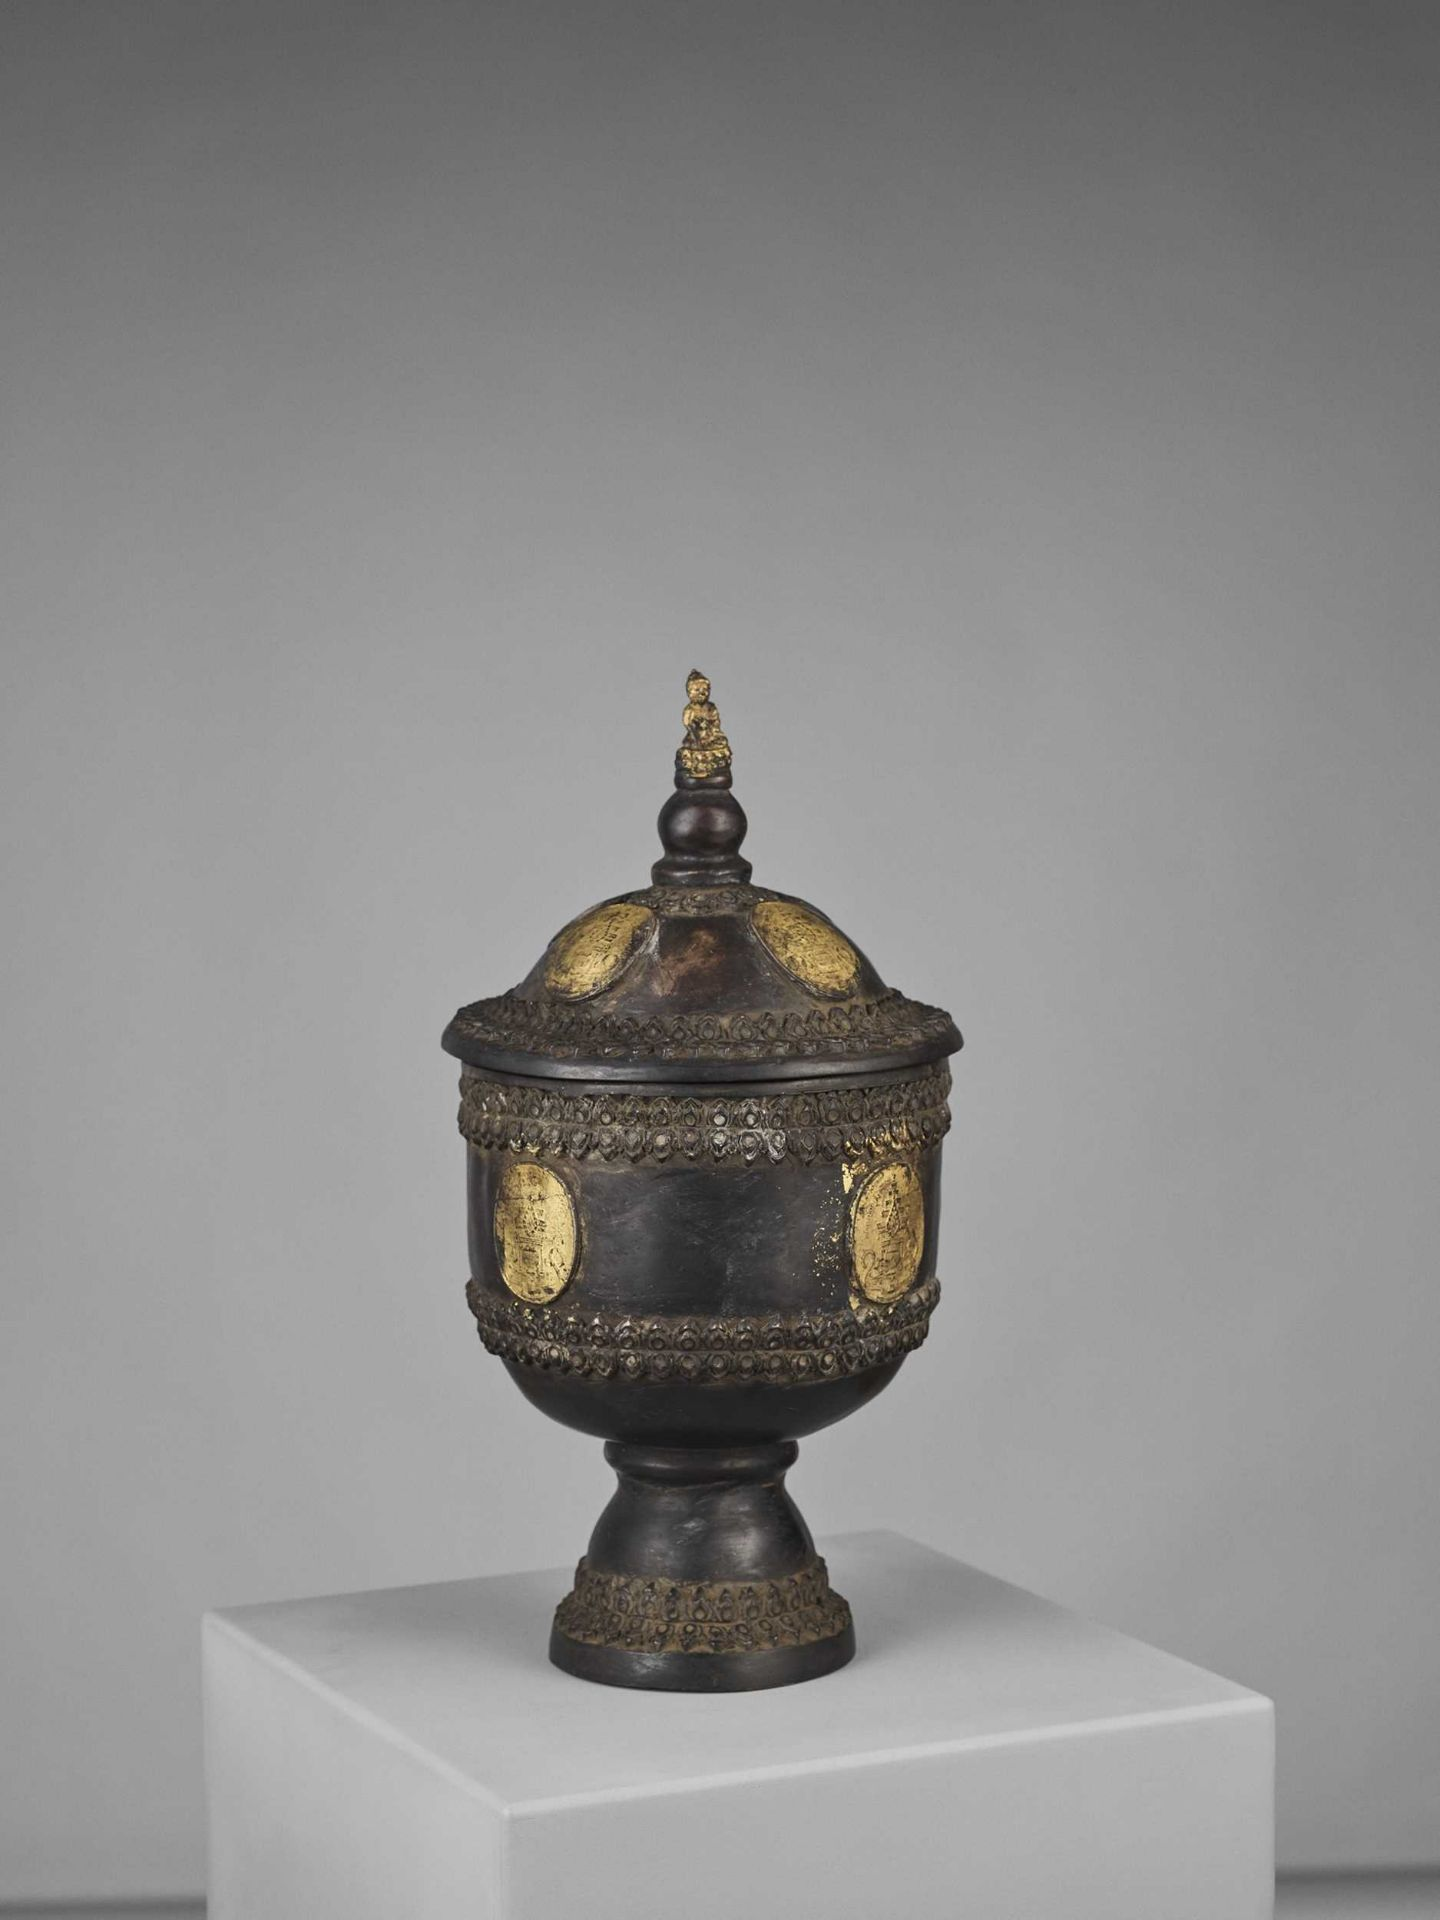 A CHAM PARCEL-GILT BRONZE VESSEL AND COVER WITH BUDDHA SHAKYAMUNI - Bild 3 aus 11